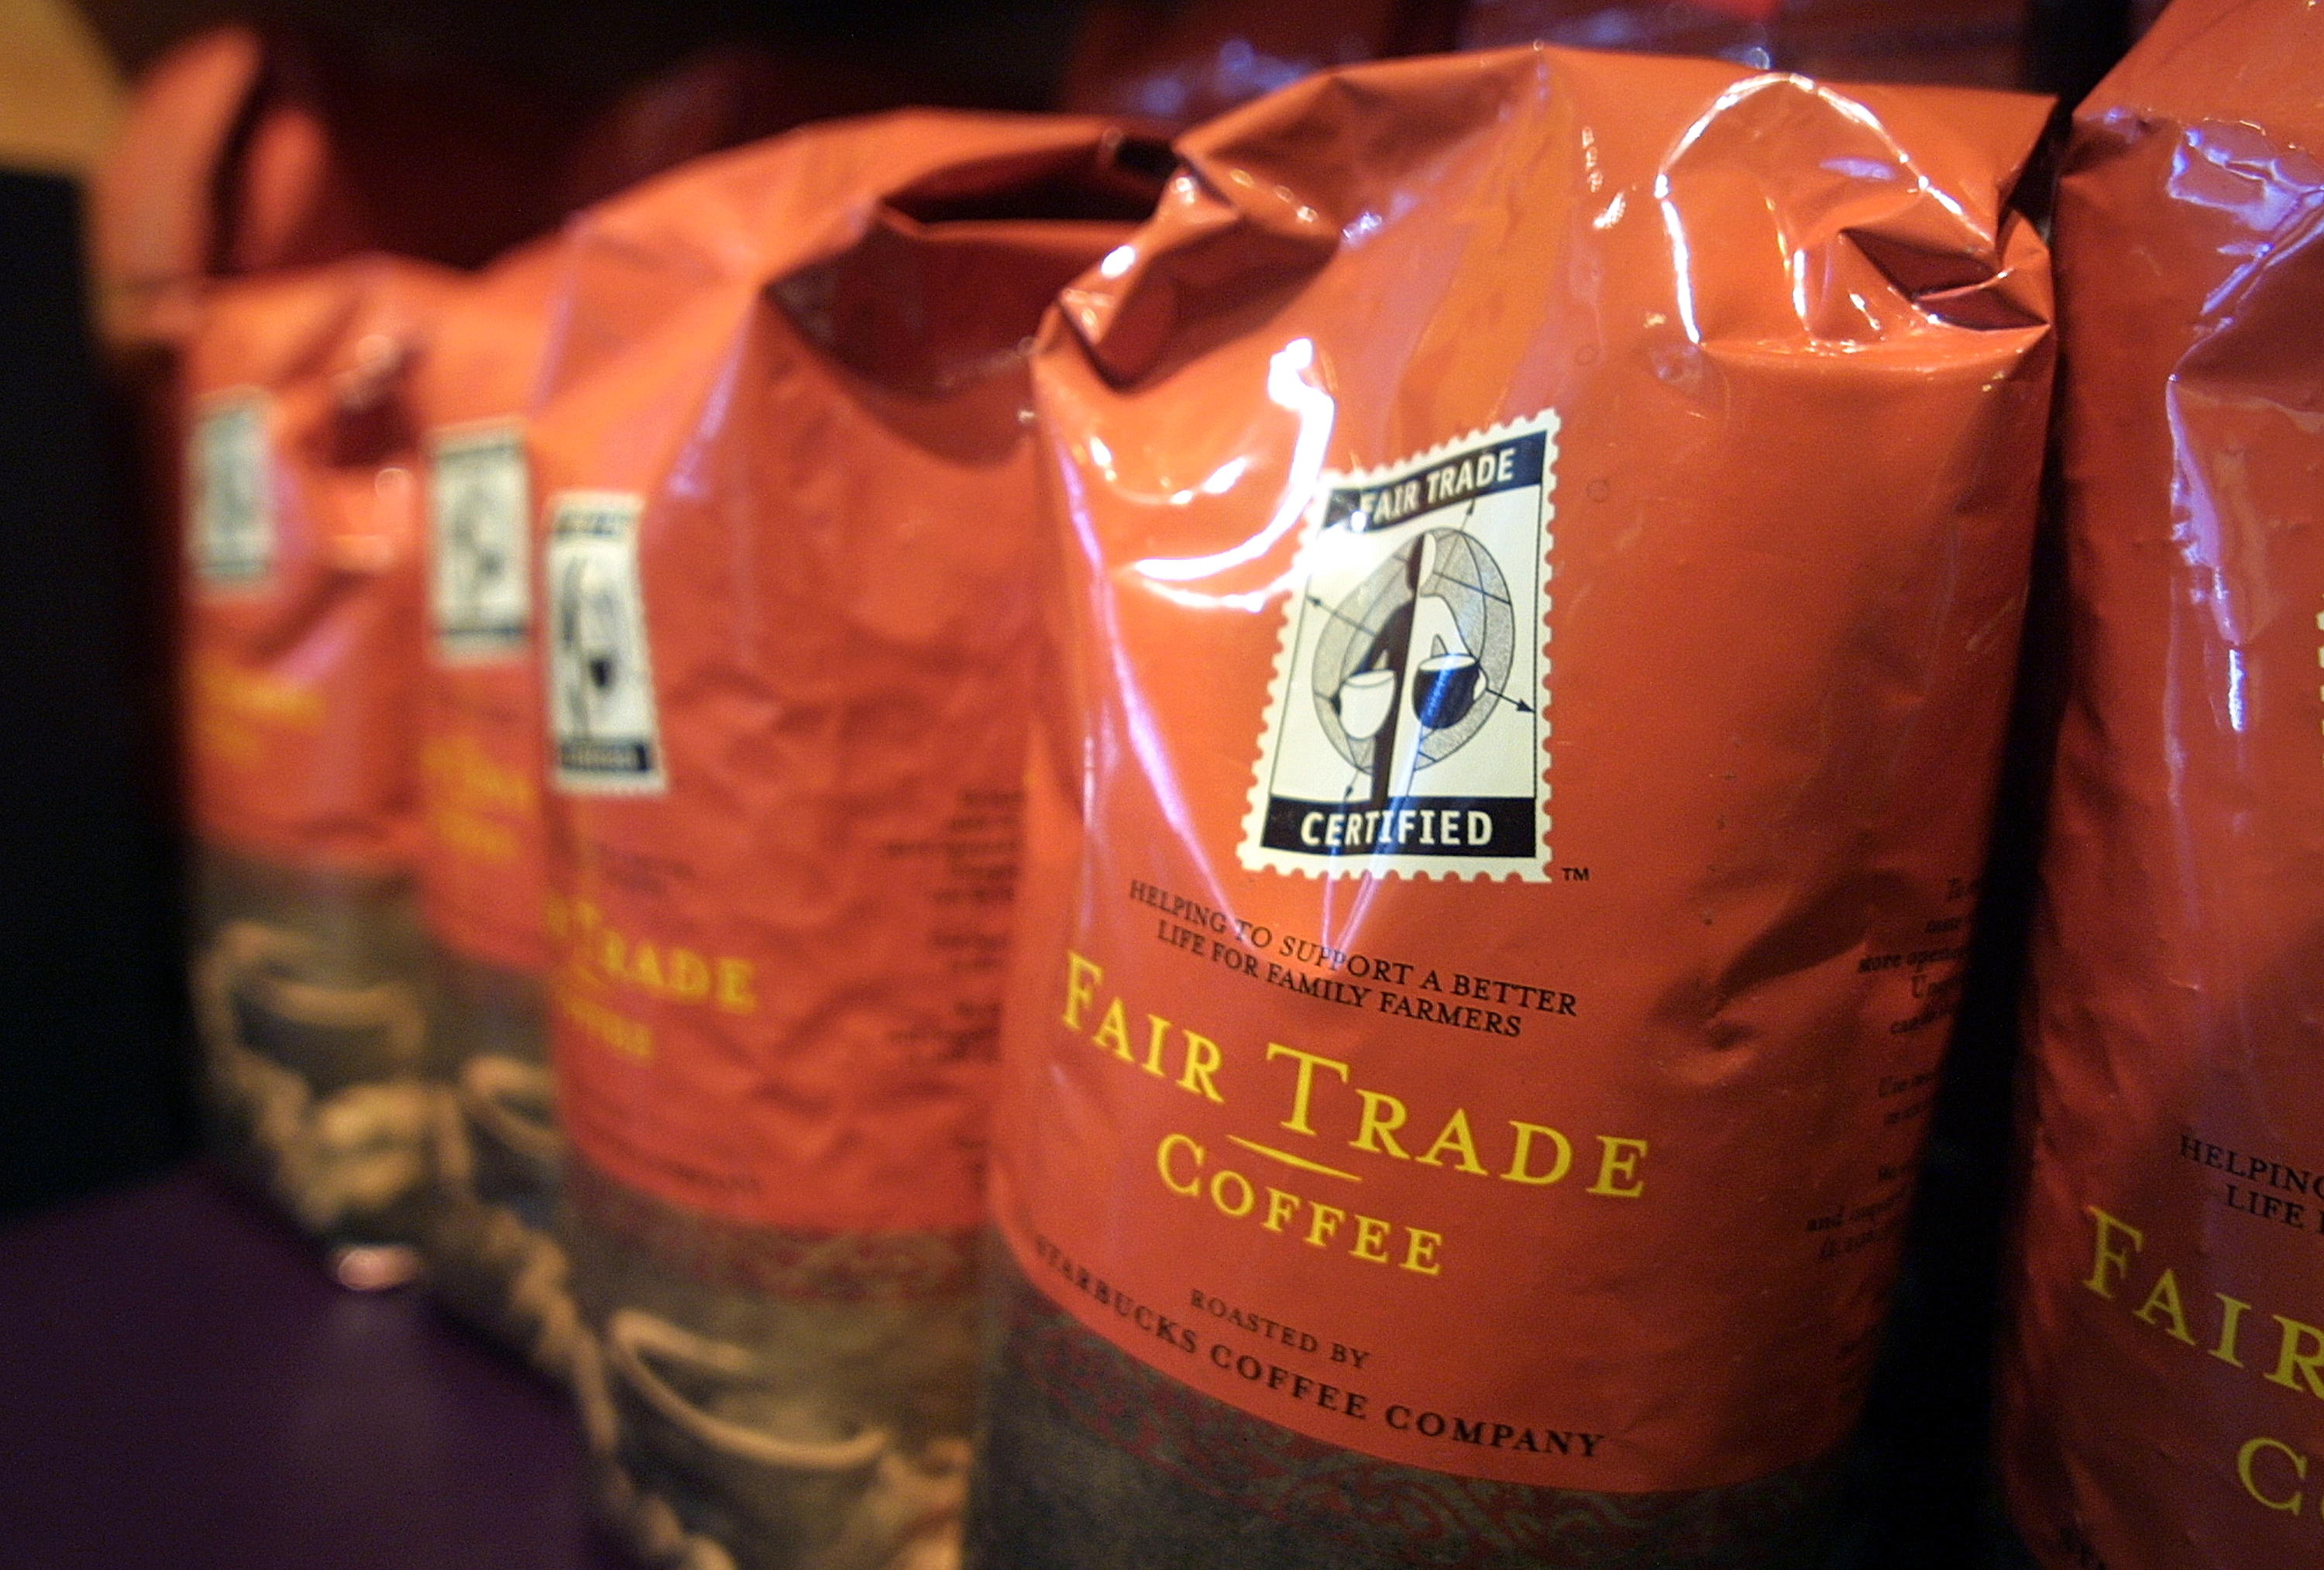 What Does Fair Trade Mean 9 Common Food Labels Decoded